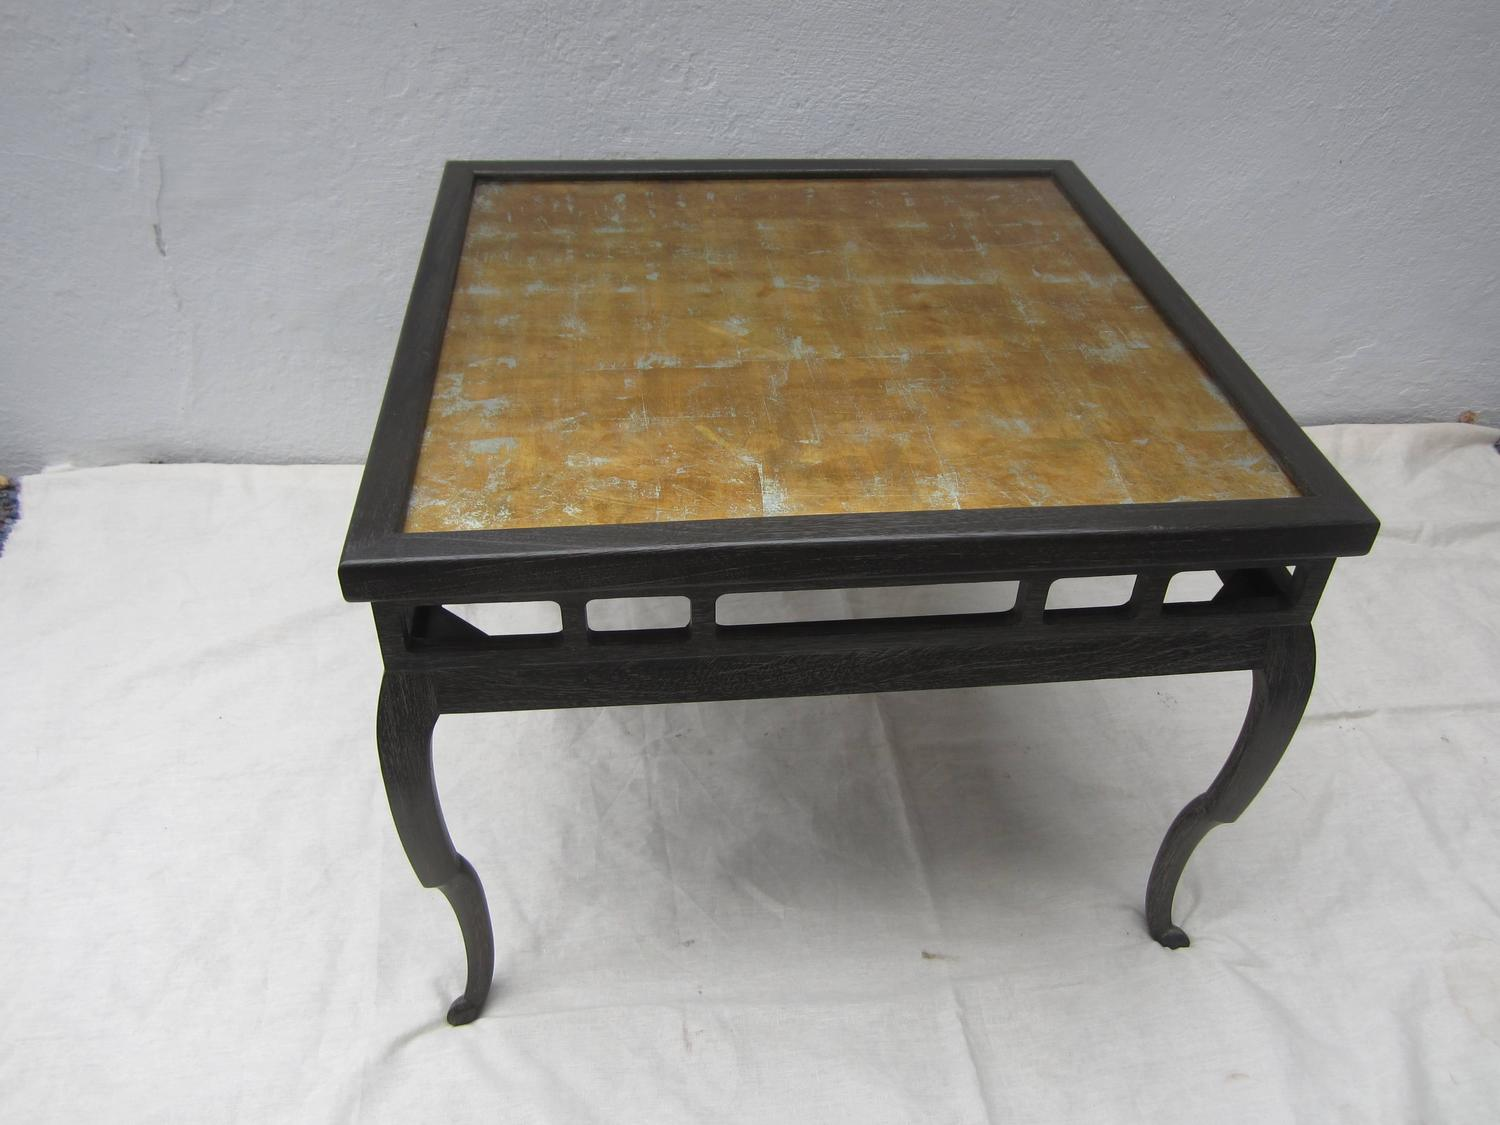 Chinese Style Tea Table In The Style Of James Mont For Sale At 1stdibs